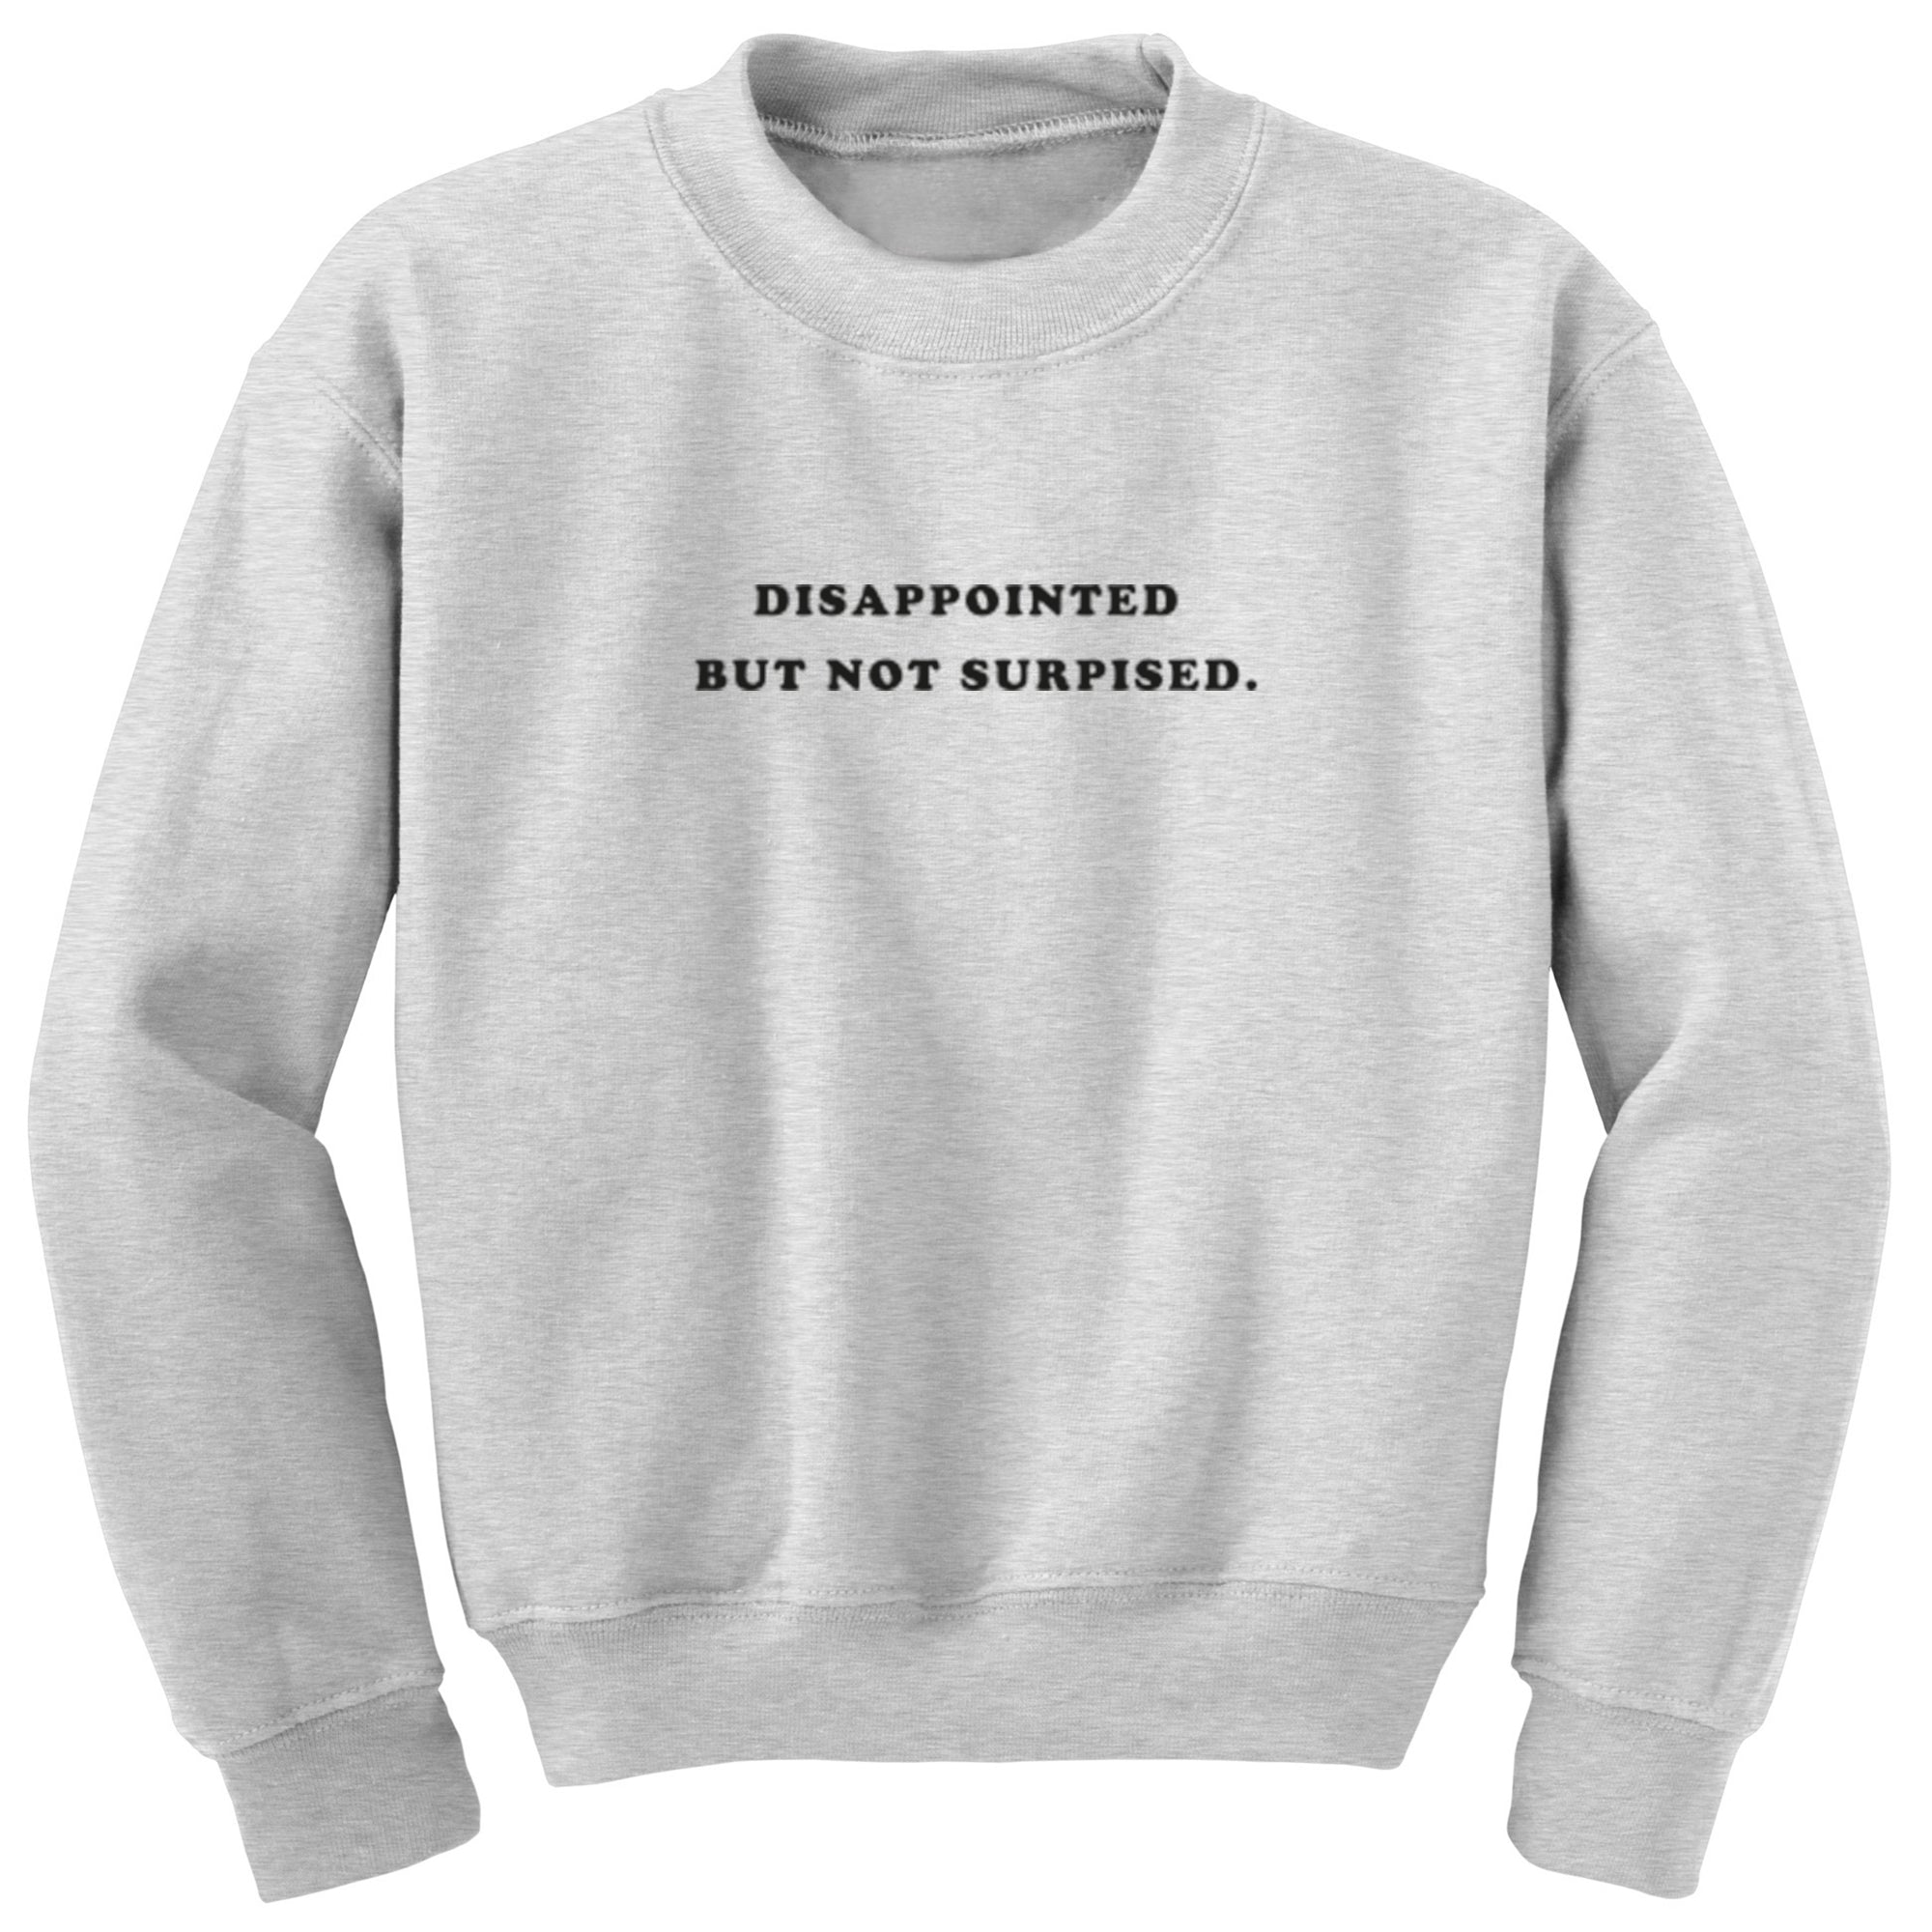 Disappointed But Not Surprised Unisex Jumper S1039 - Illustrated Identity Ltd.